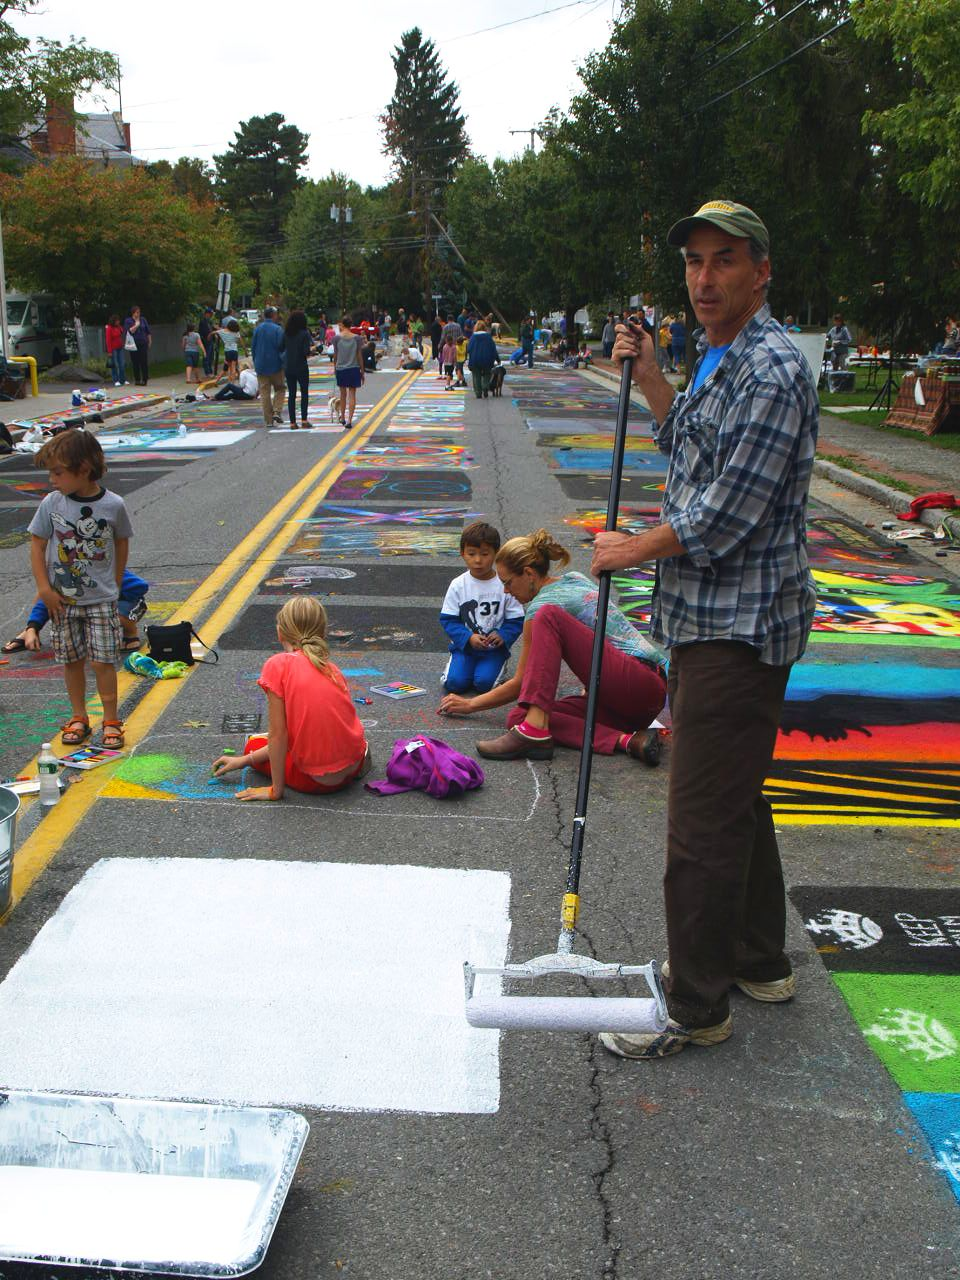 Robert McKeon paints white spaces for artists at the 2012 Tivoli Street Painting Festival.